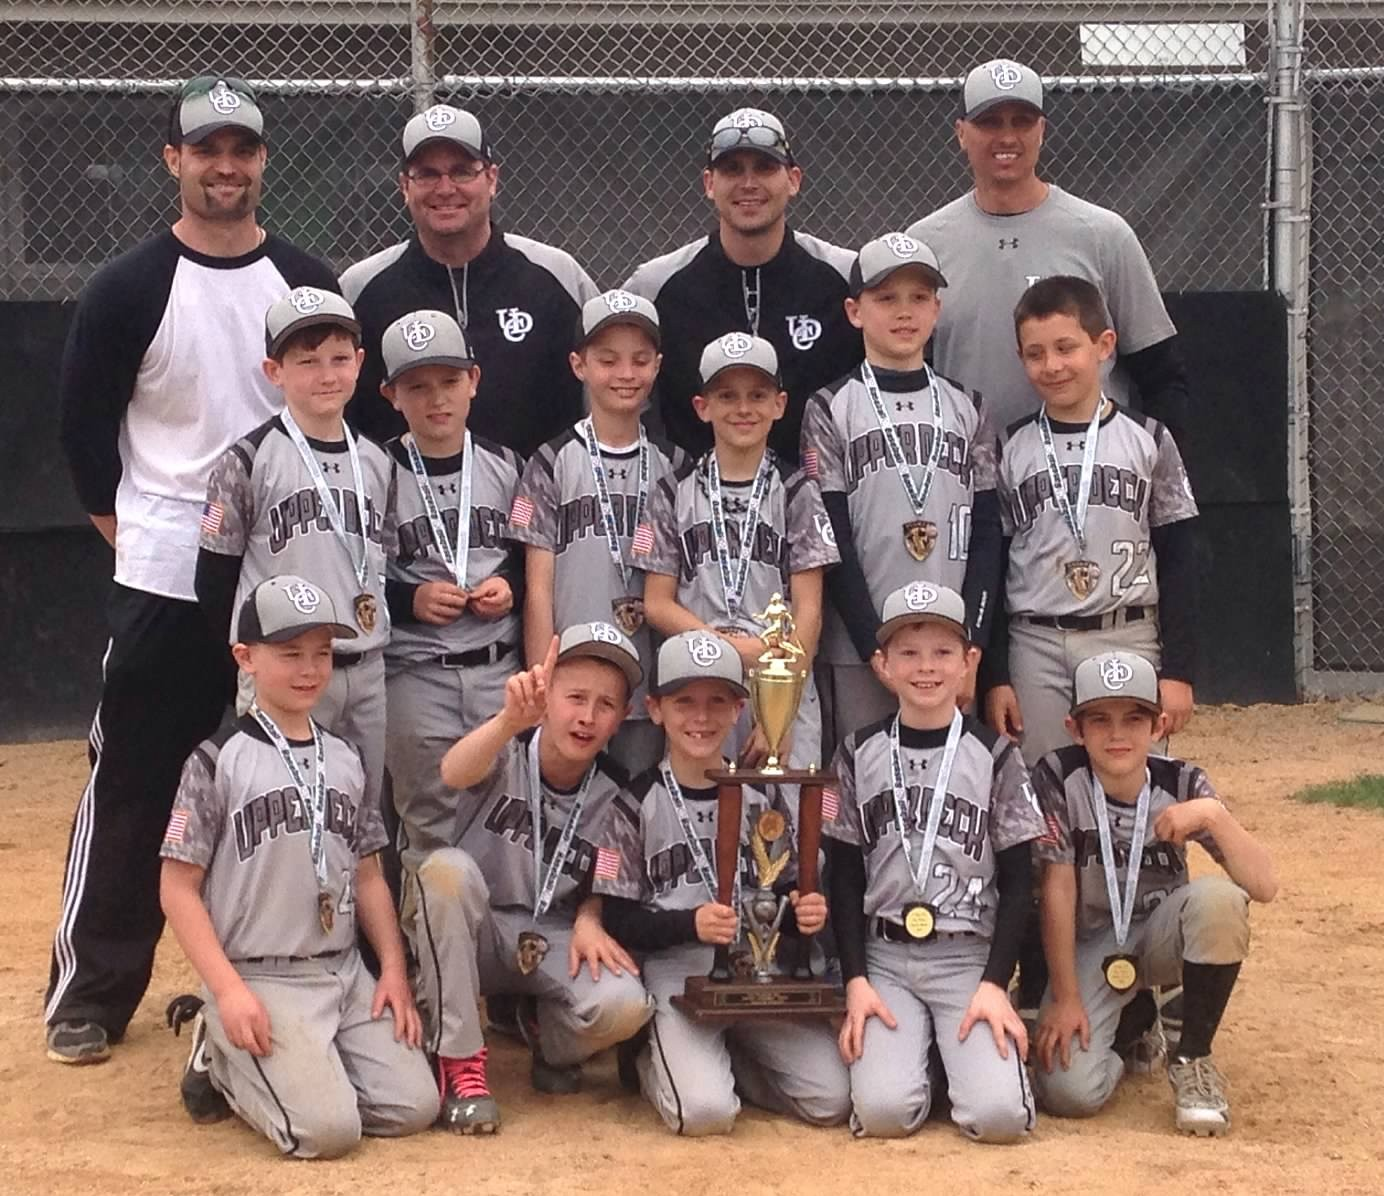 9U-Les takes 1st in USSSA Troy Spring Classic